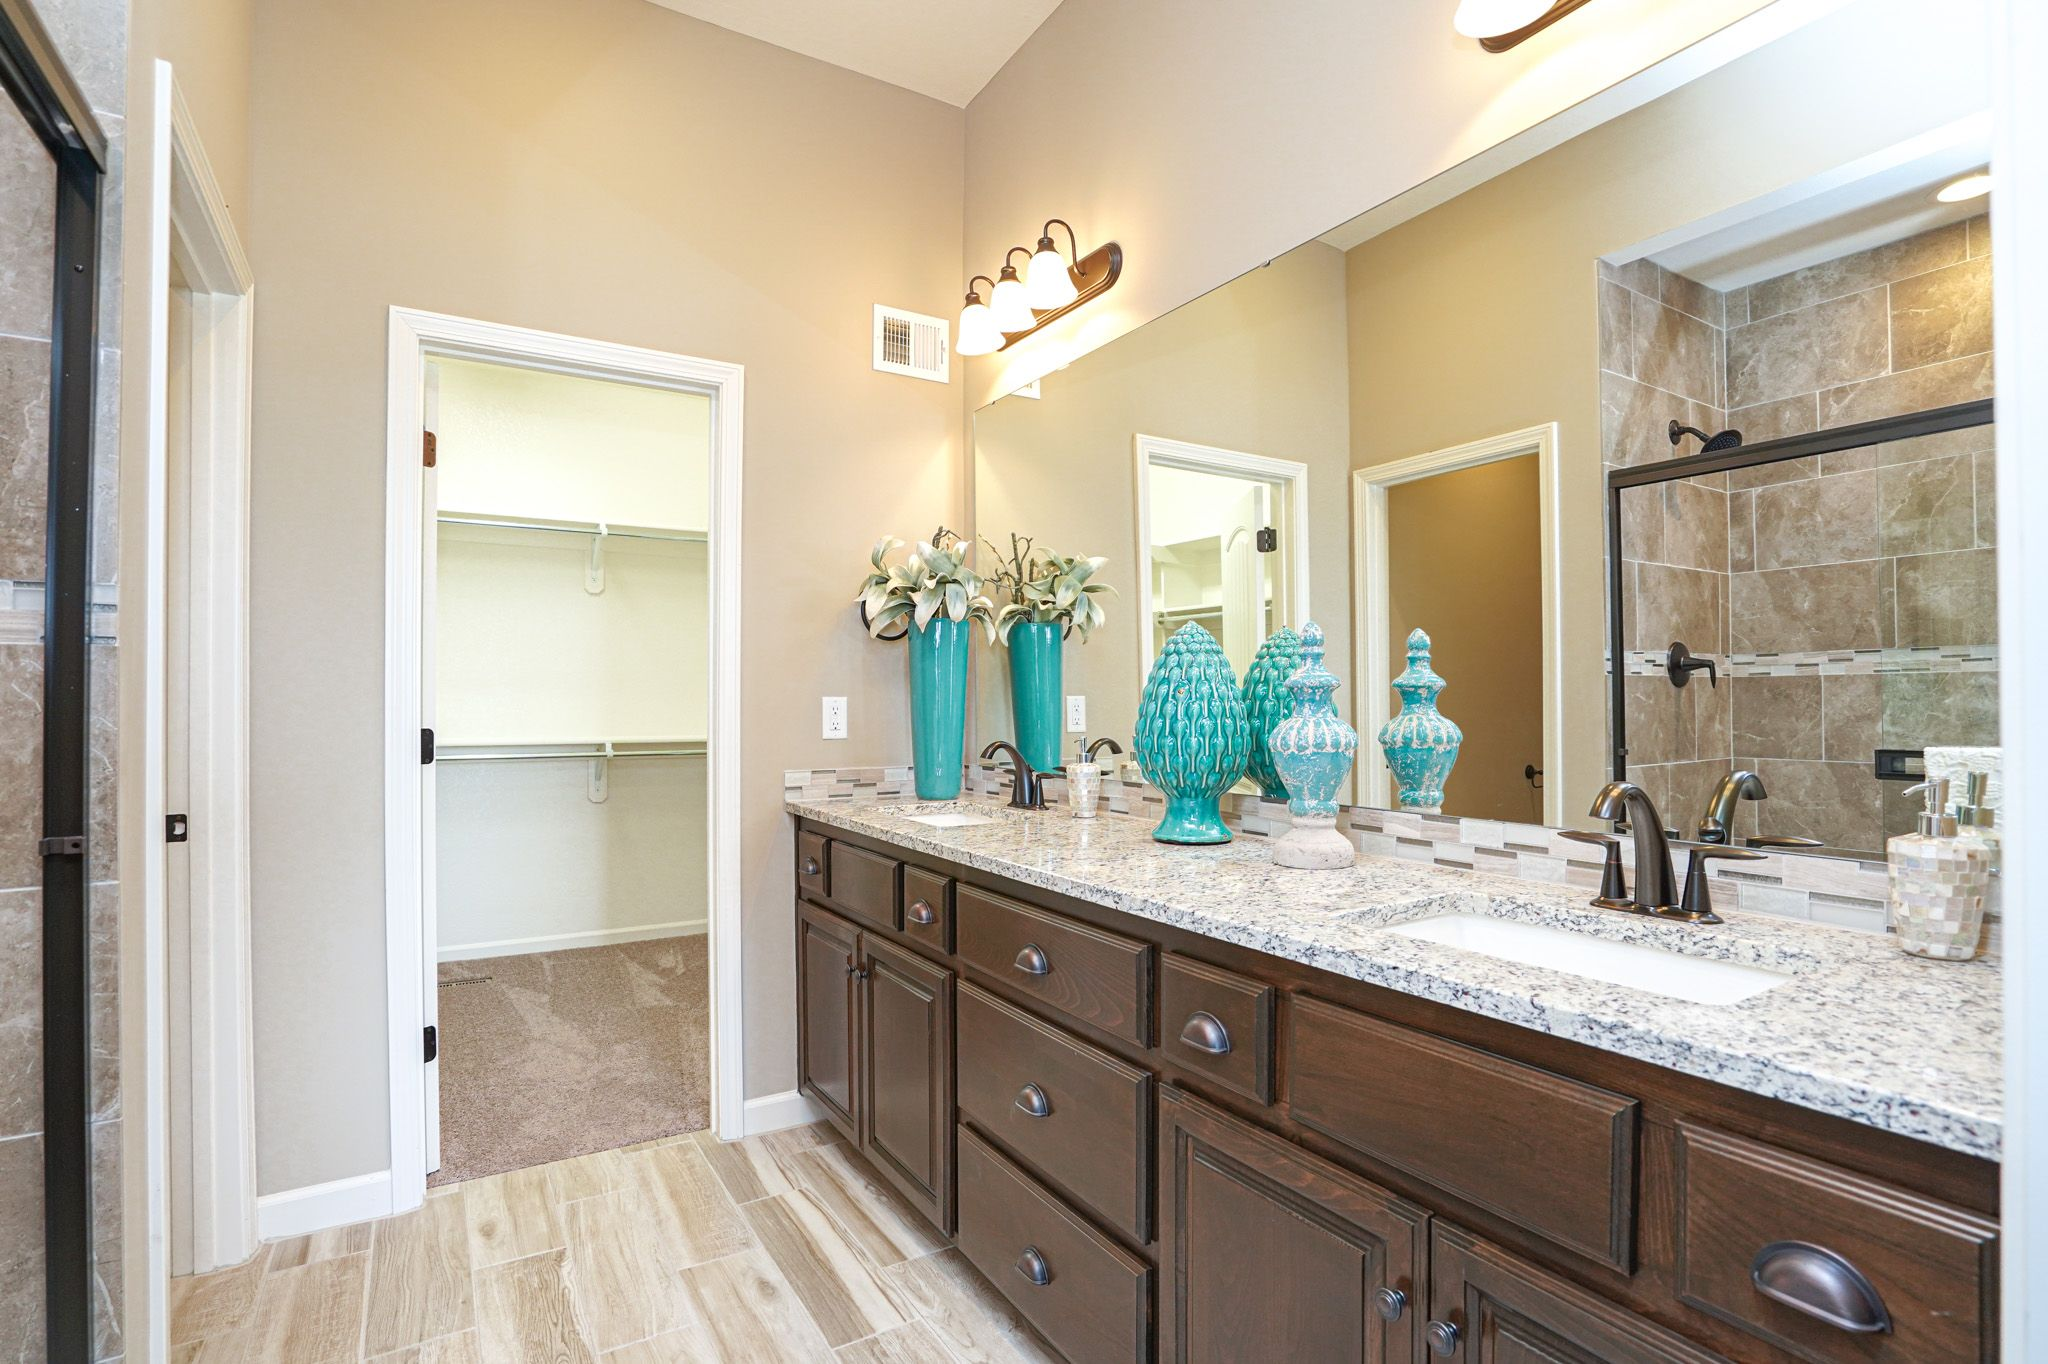 Bathroom featured in the Cypress - Care free By Summit Homes in Kansas City, MO